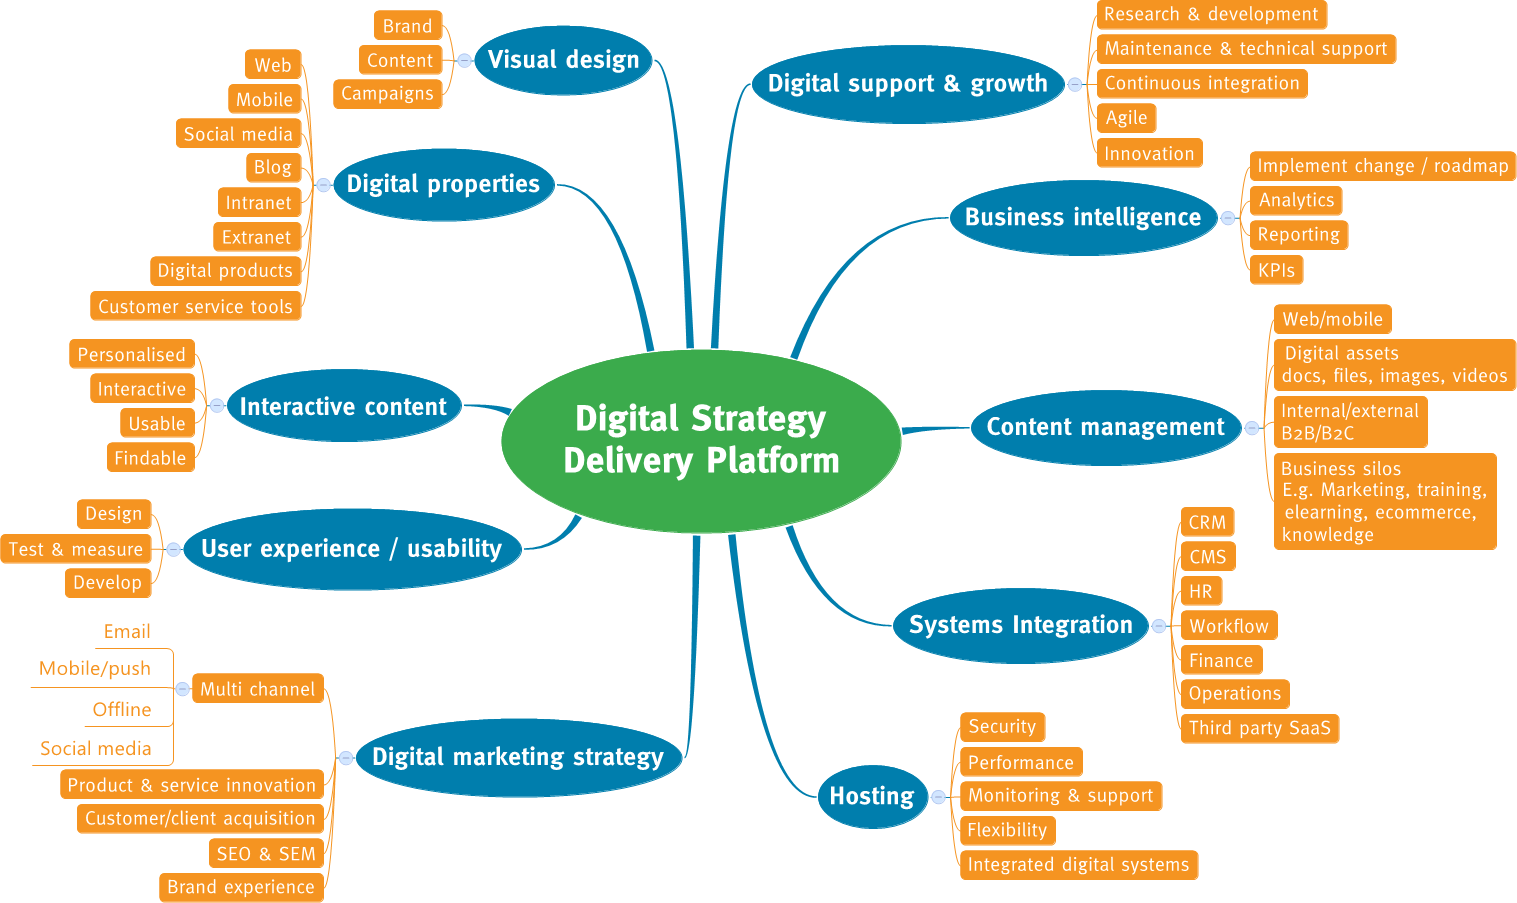 Mind map of a digital strategy delivery platform.